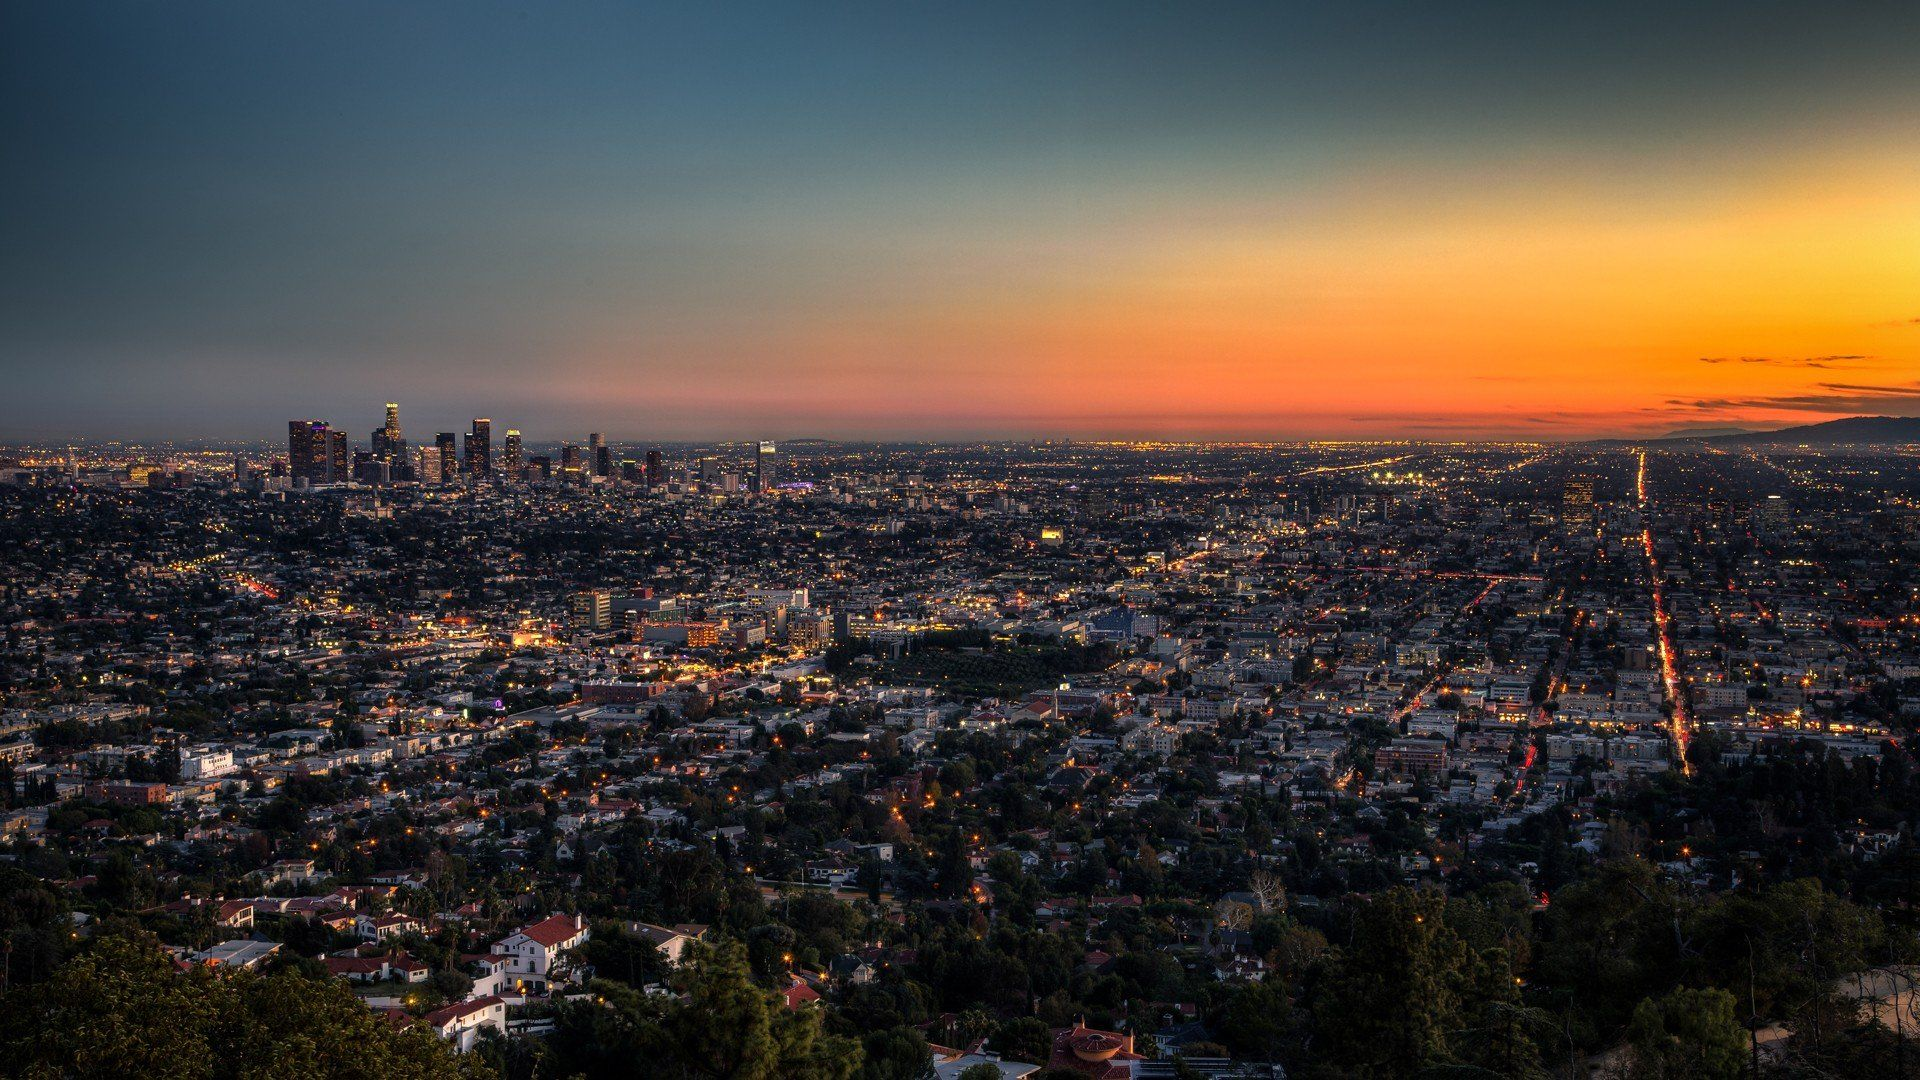 Los Angeles background picture hd